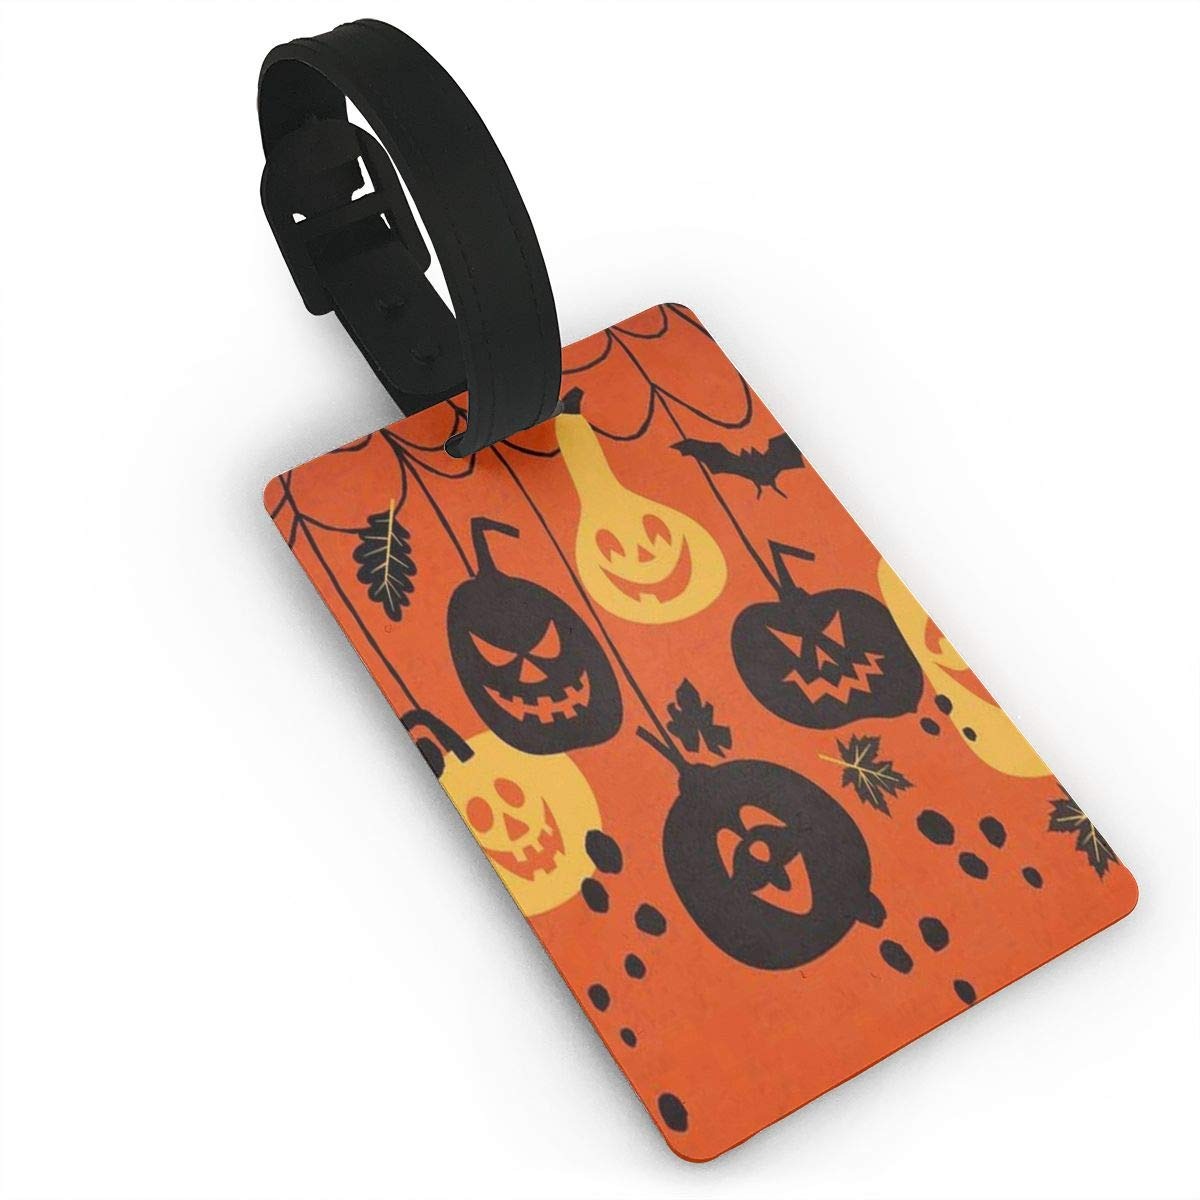 Airealy Luggage Tag Happy Halloween Castle Bat Pumpkin Business ID Card Holder for Travel BaggageTags Suitcase Labels Bag Travel Accessories Set of 2